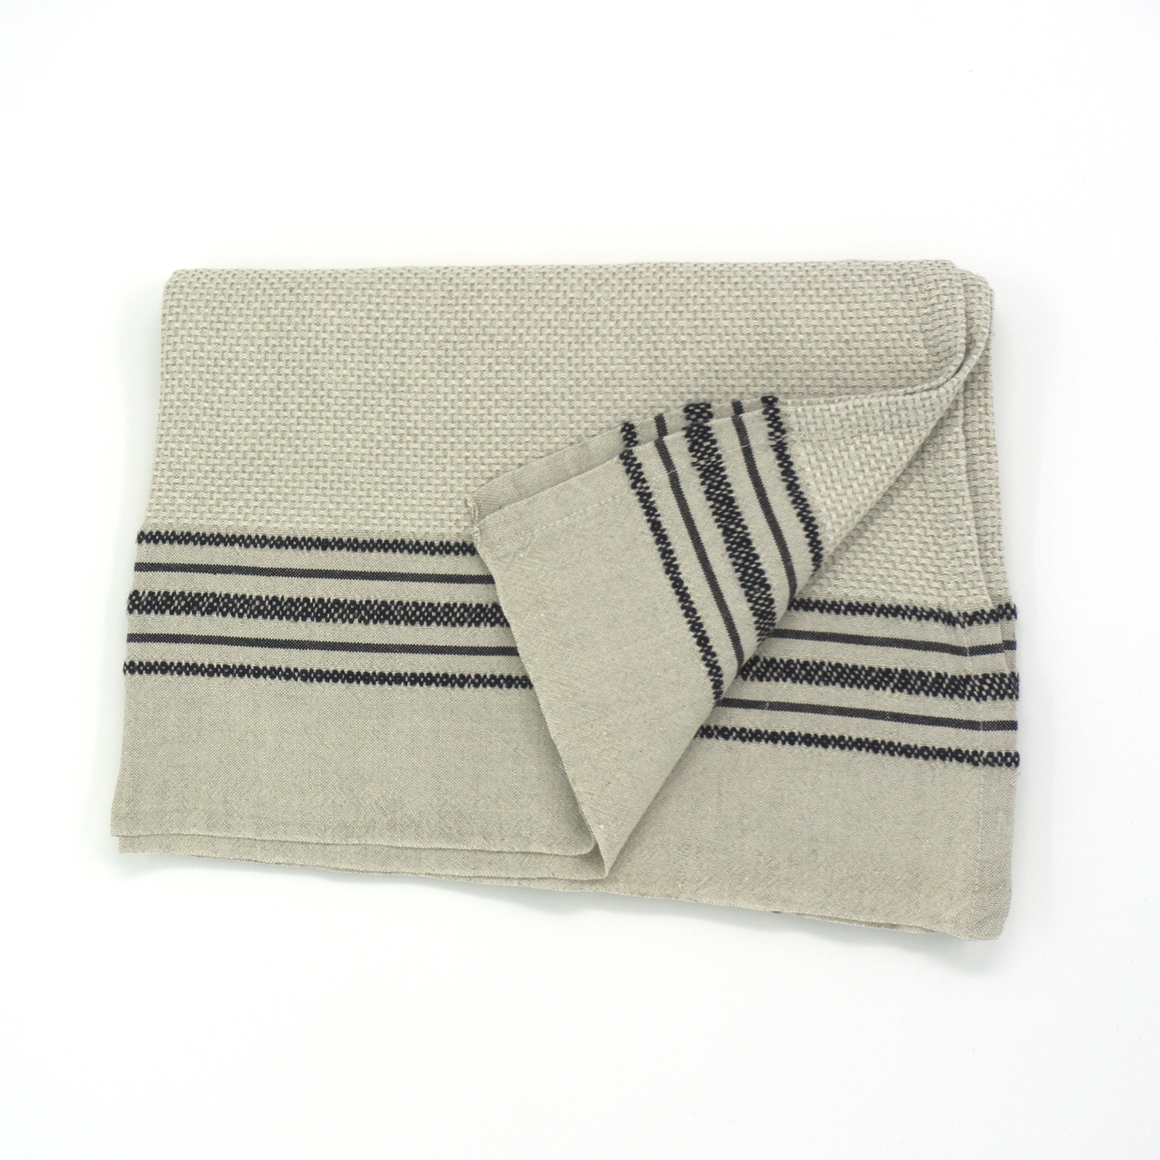 mungo utility cloth - natural